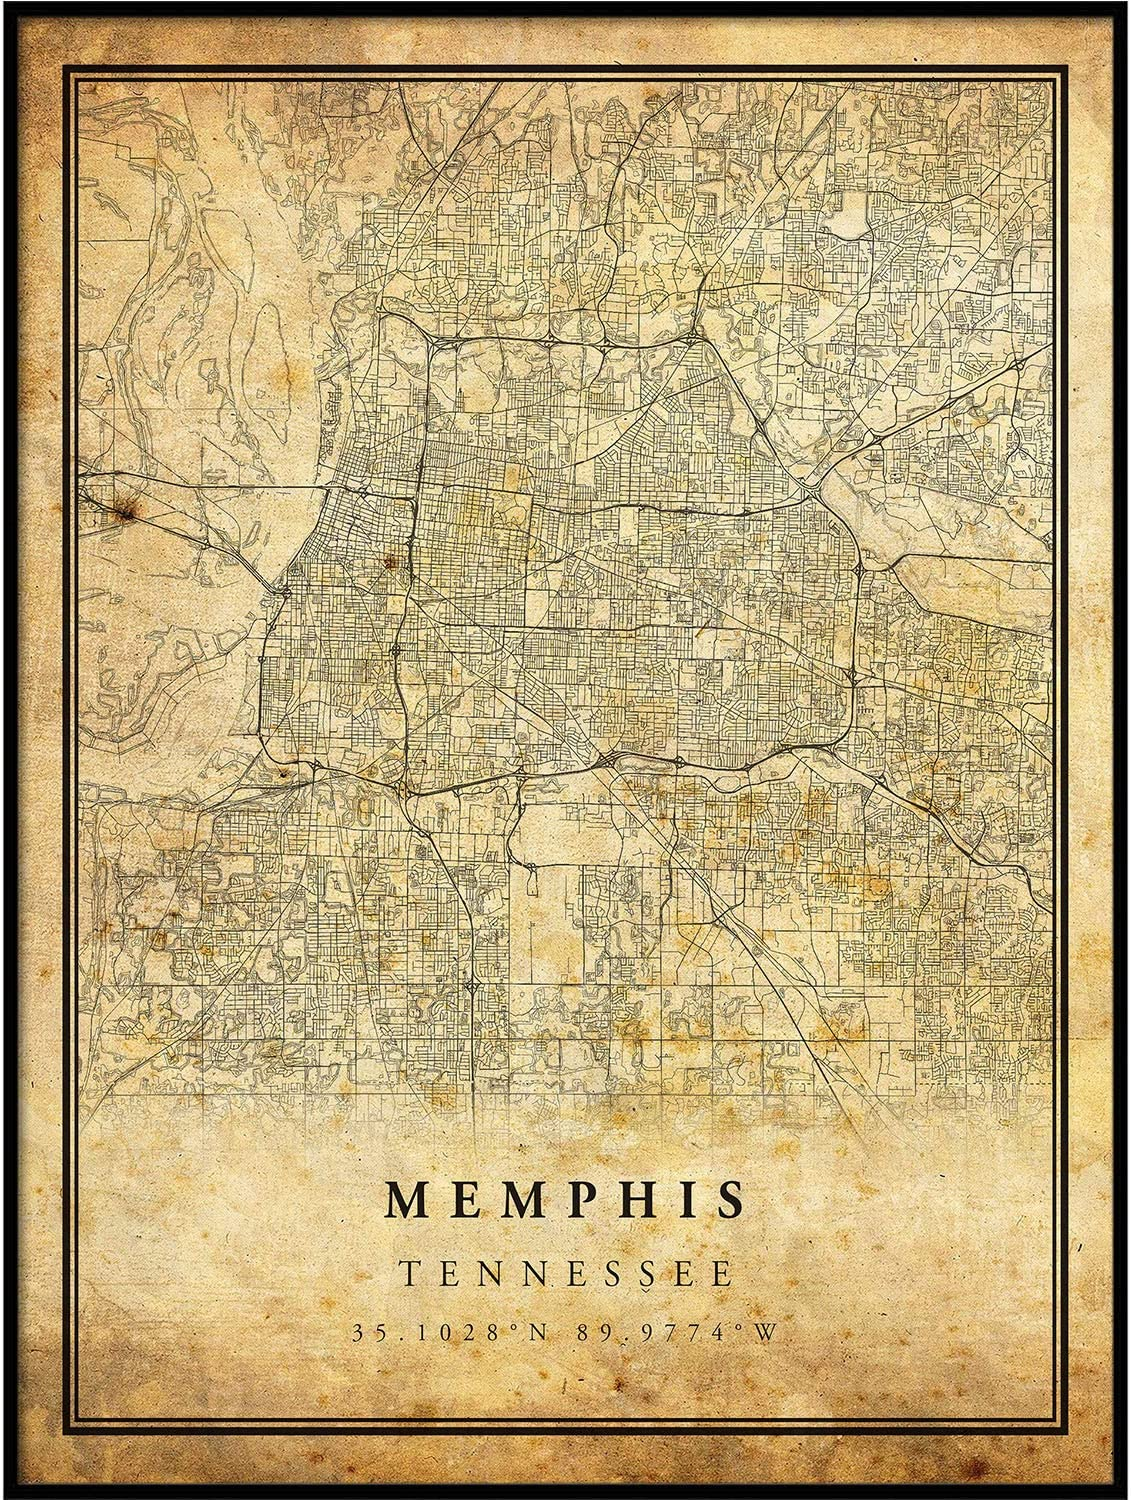 Memphis map Vintage Style Poster Print | Old City Artwork Prints | Antique Style Home Decor | Tennessee Wall Art Gift | Old map Print 11x14